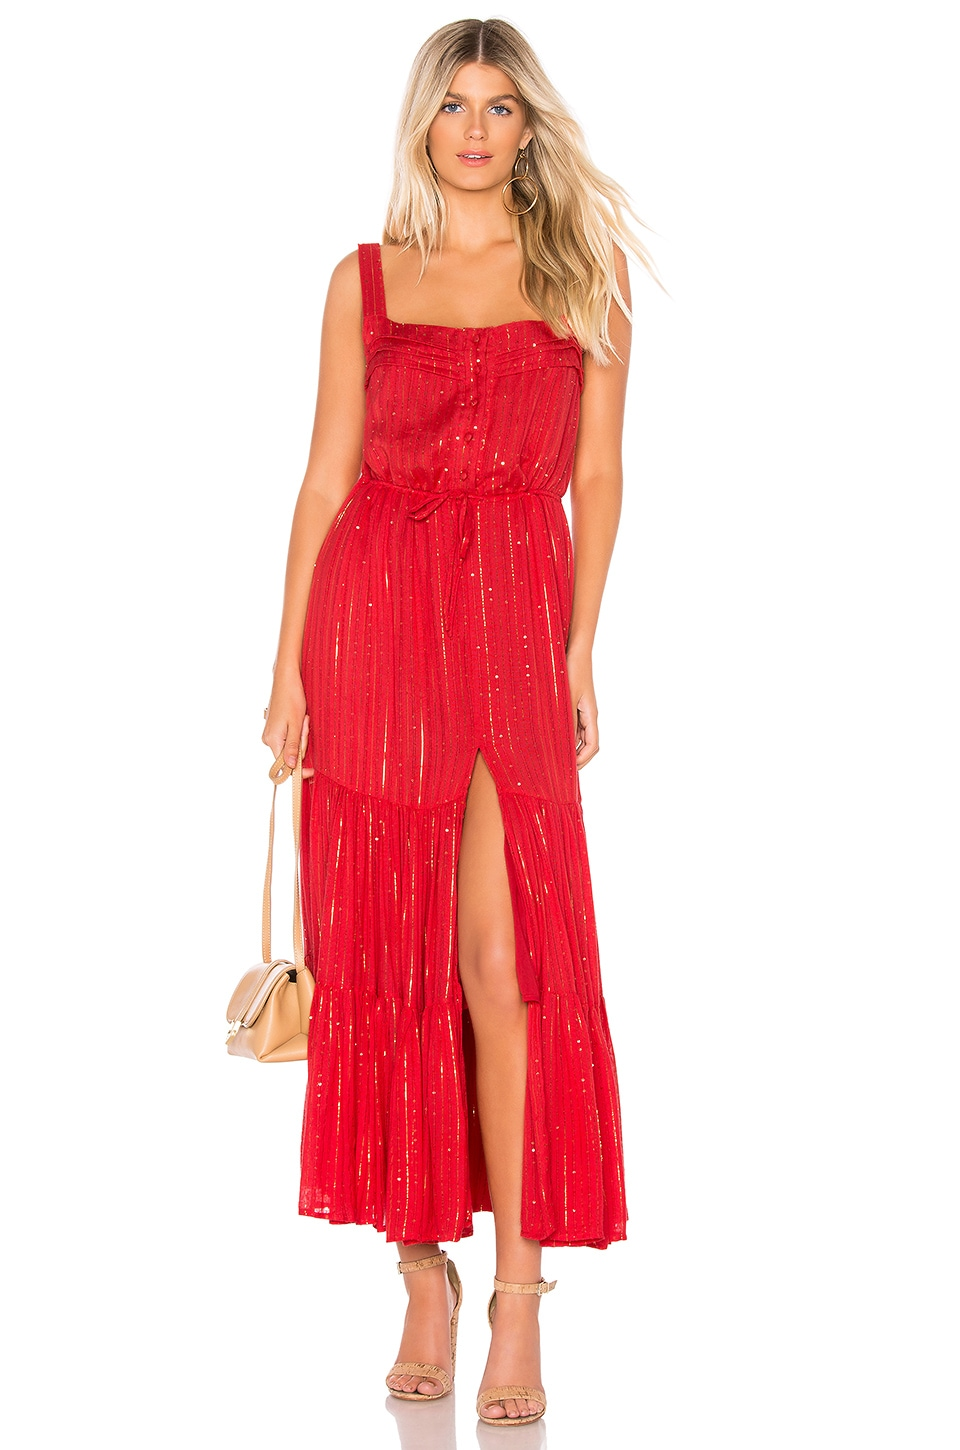 Sundress Lucia Dress in Roma Red